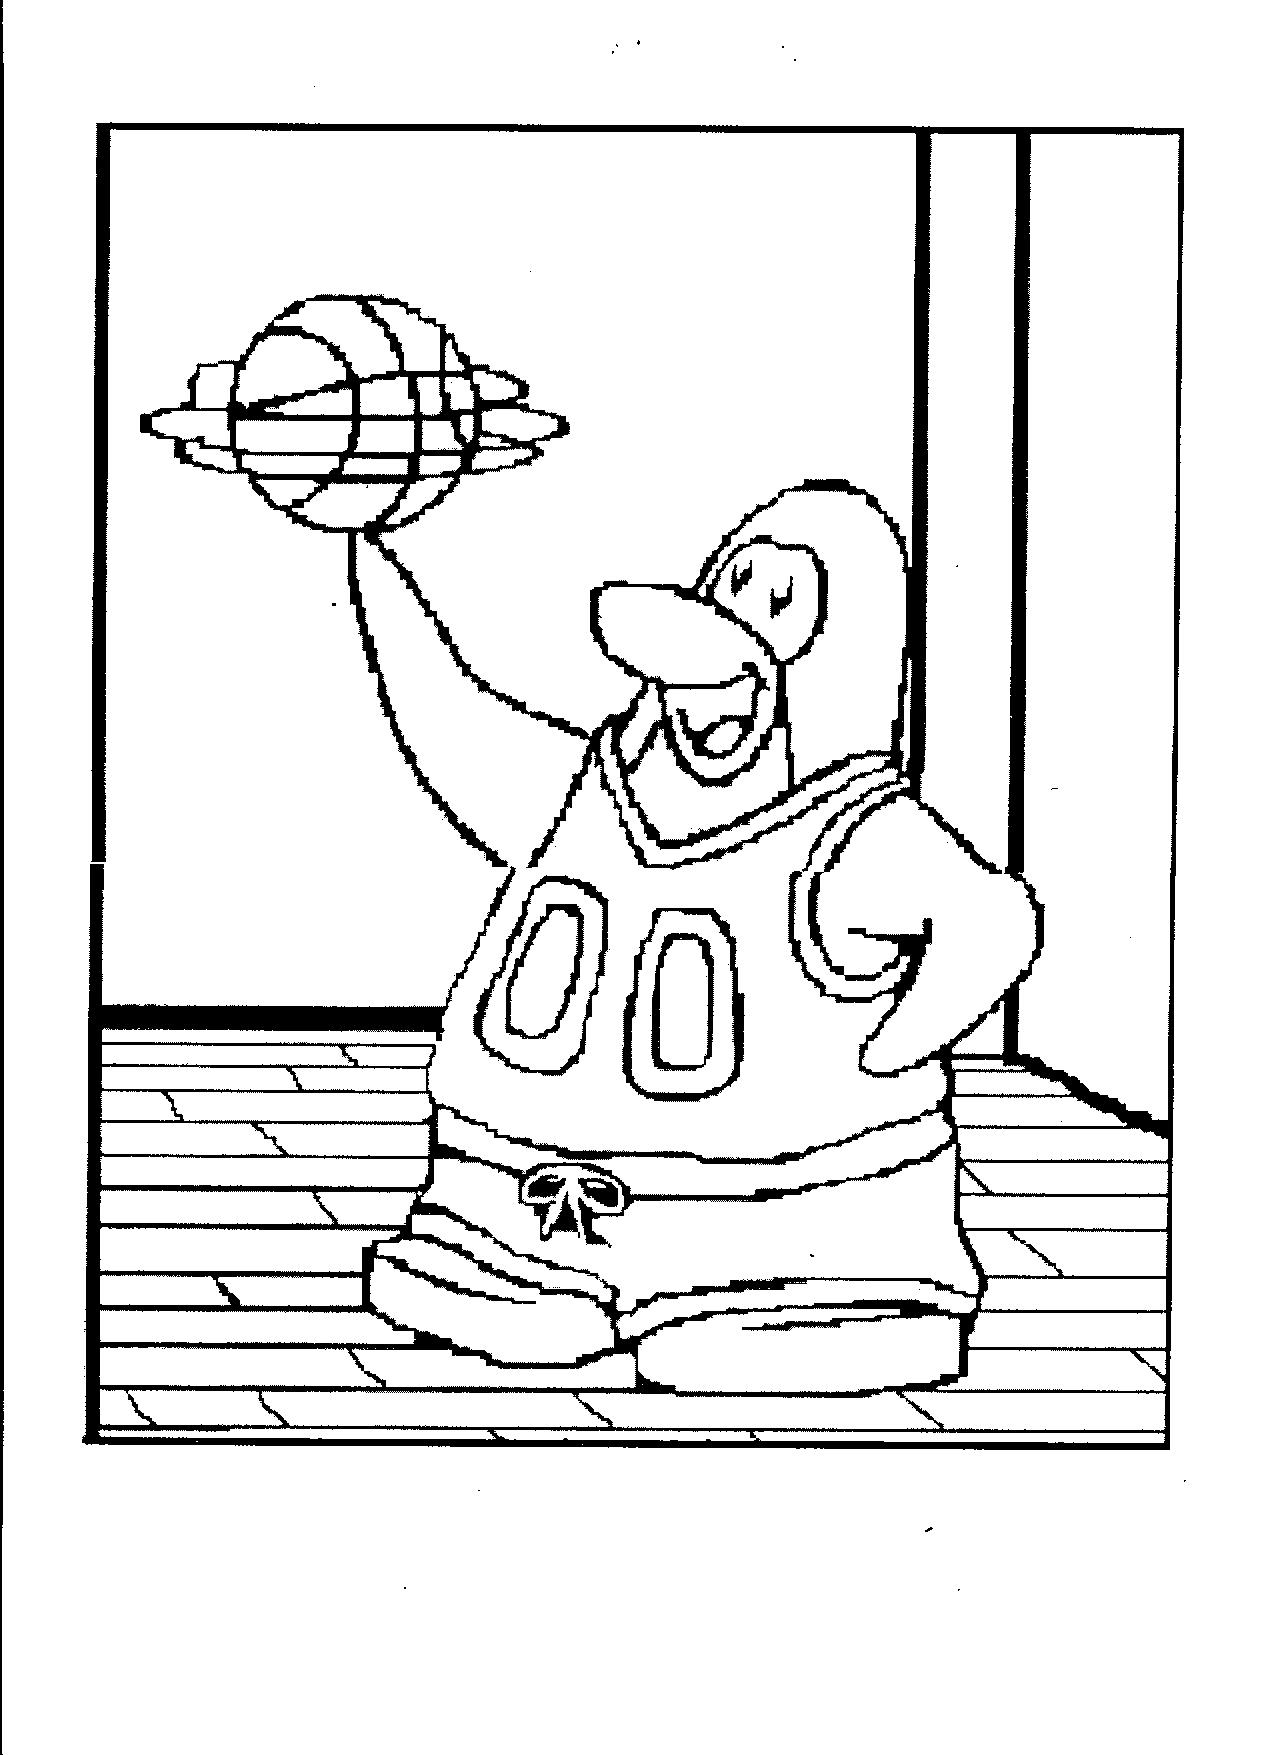 Show me more club penguin epf colouring pages - Club Penguin Coloring Pages